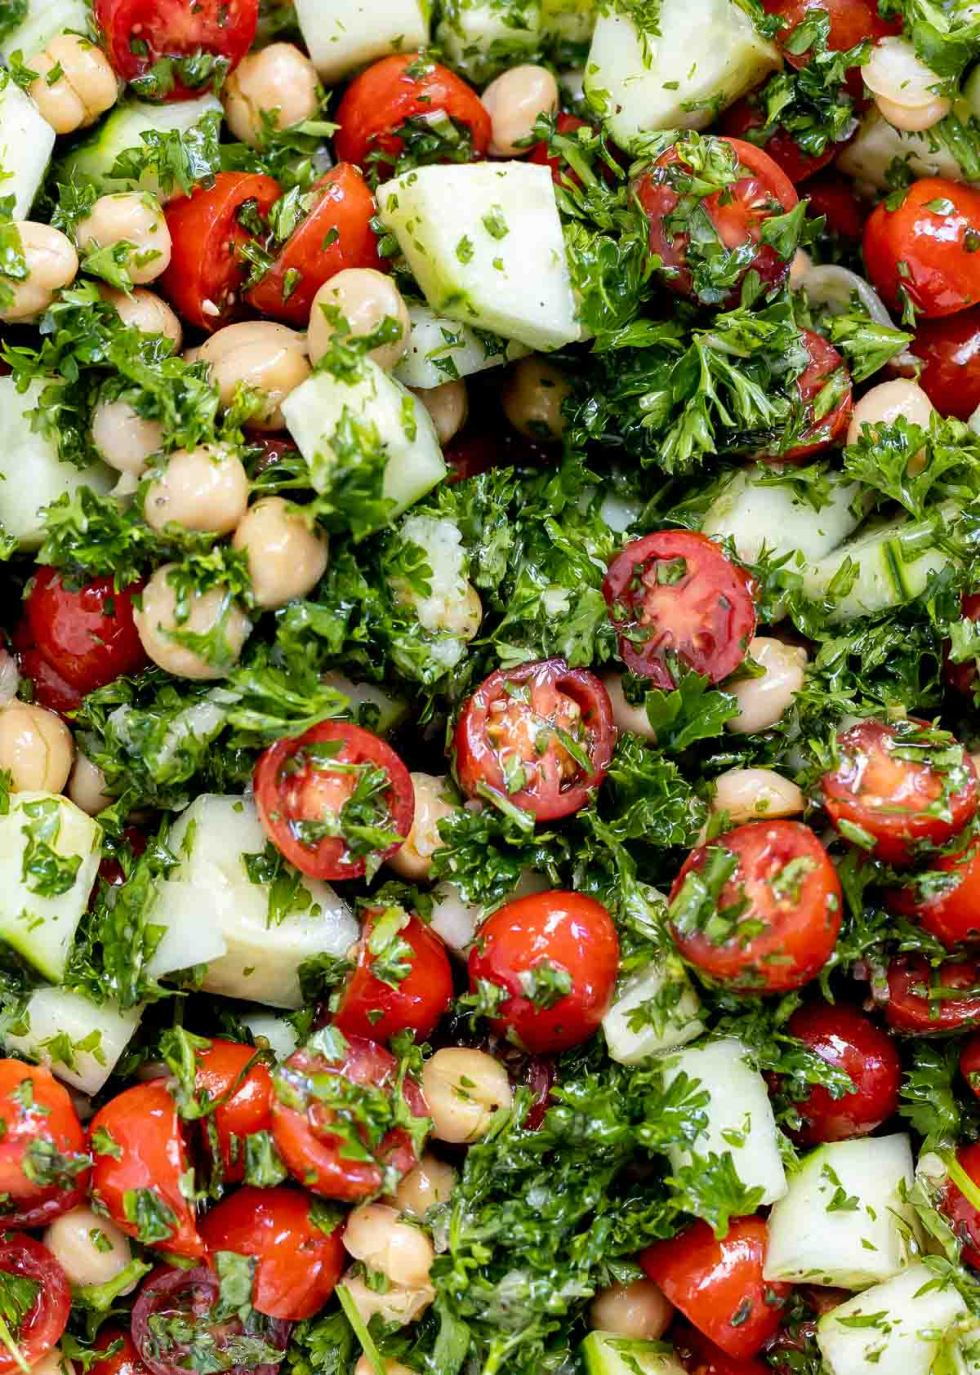 close up of tomatoes, cucumbers and chickpeas tossed in fresh herb dressing